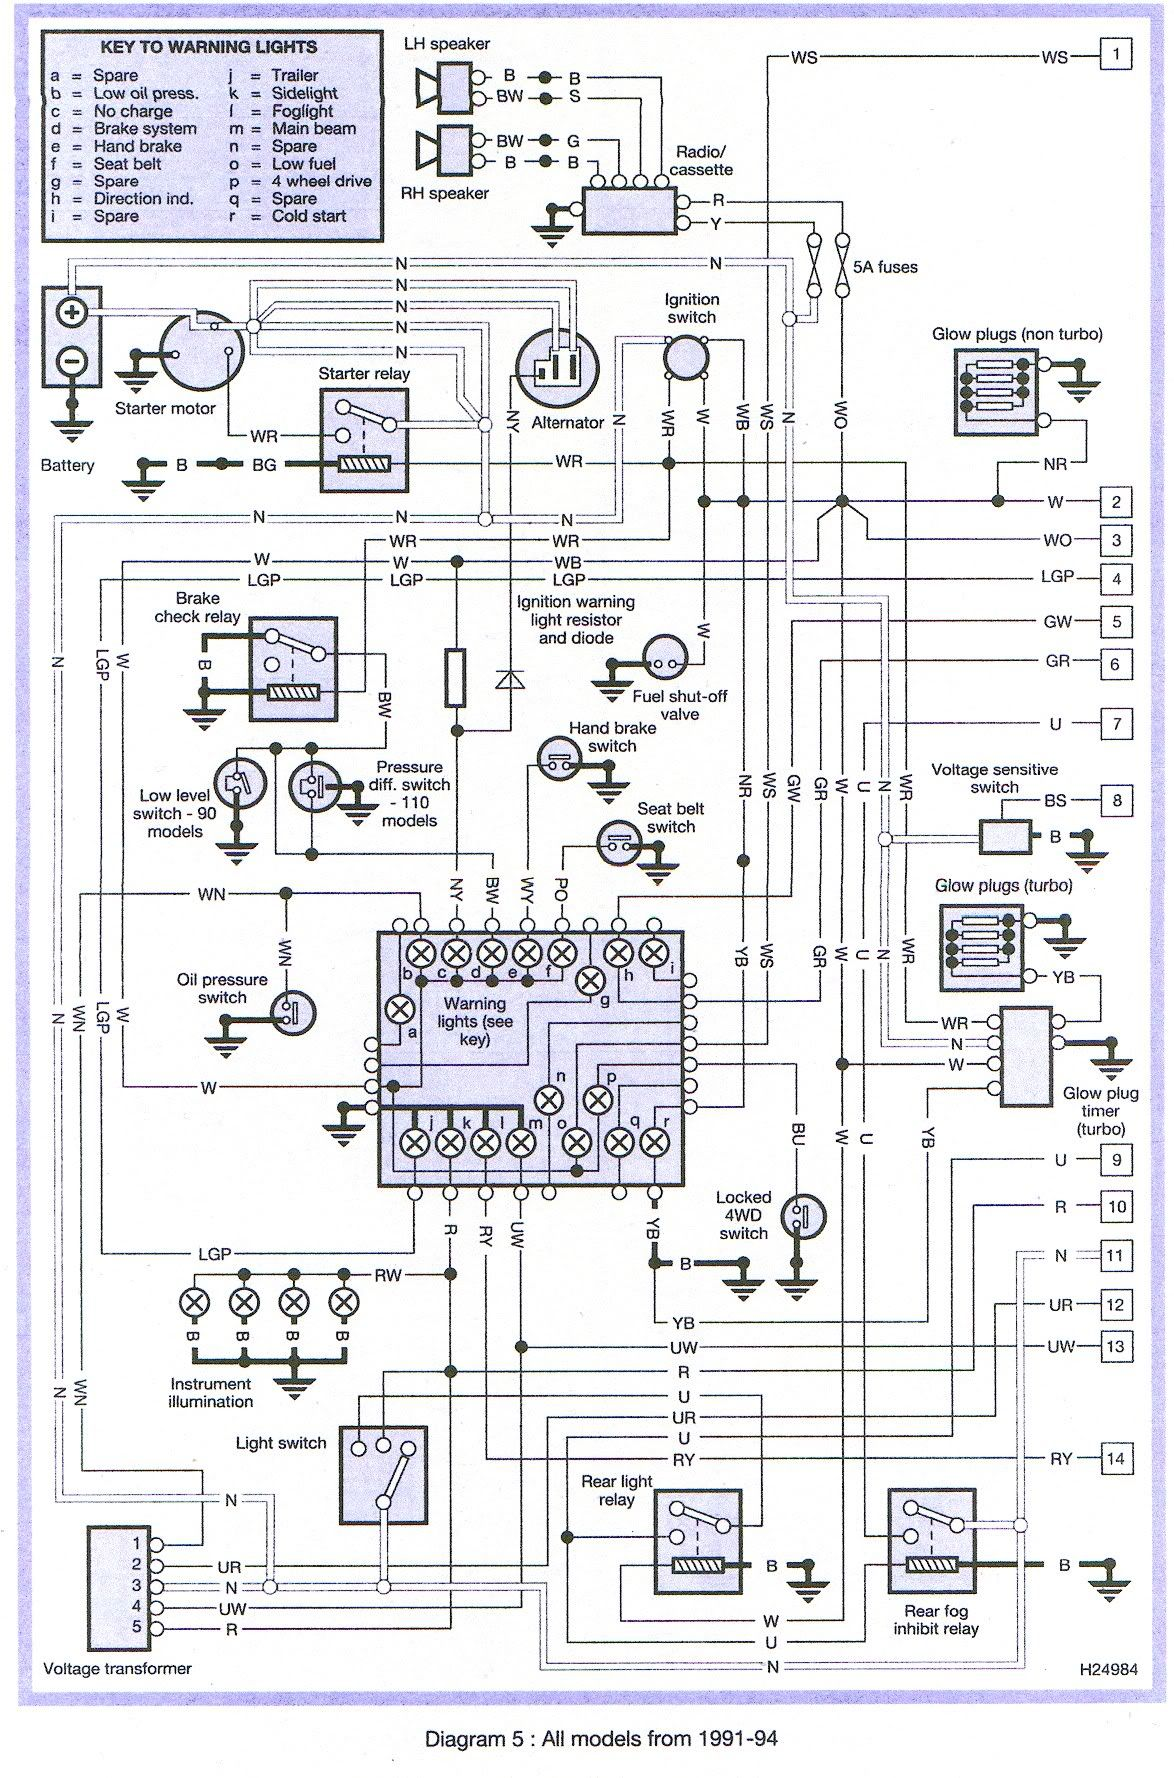 07629544bfff38ad2881b2c21312c6e6 land rover discovery wiring diagram manual repair with engine  at couponss.co